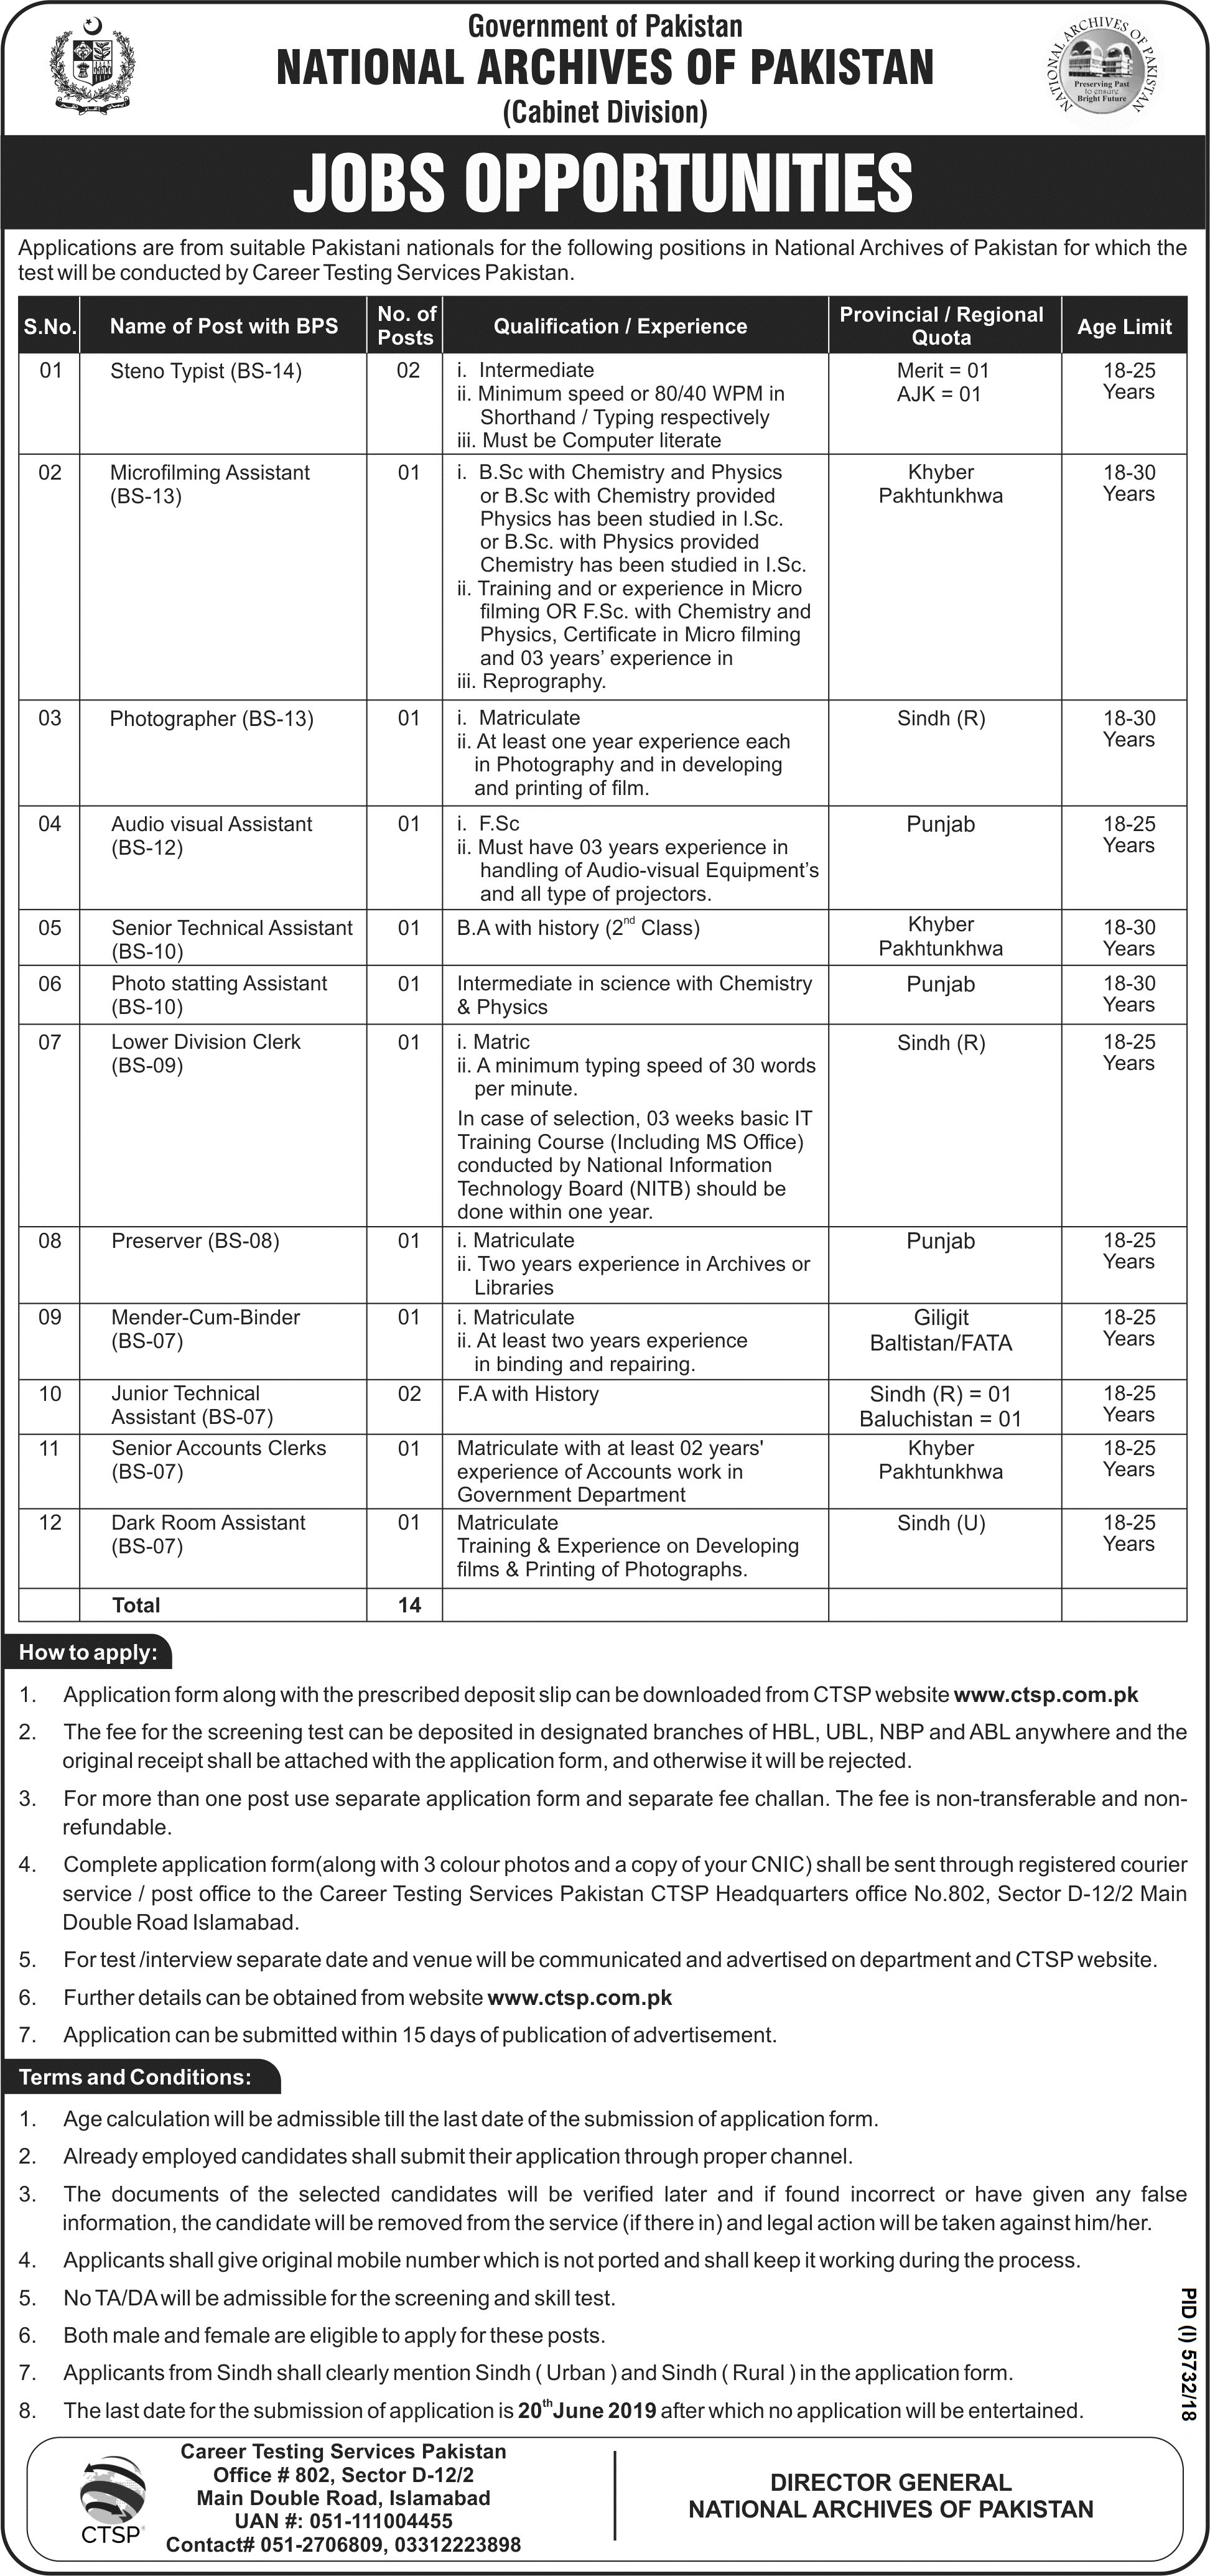 National Archives of Pakistan Jobs 2019 application form Eligibility criteria